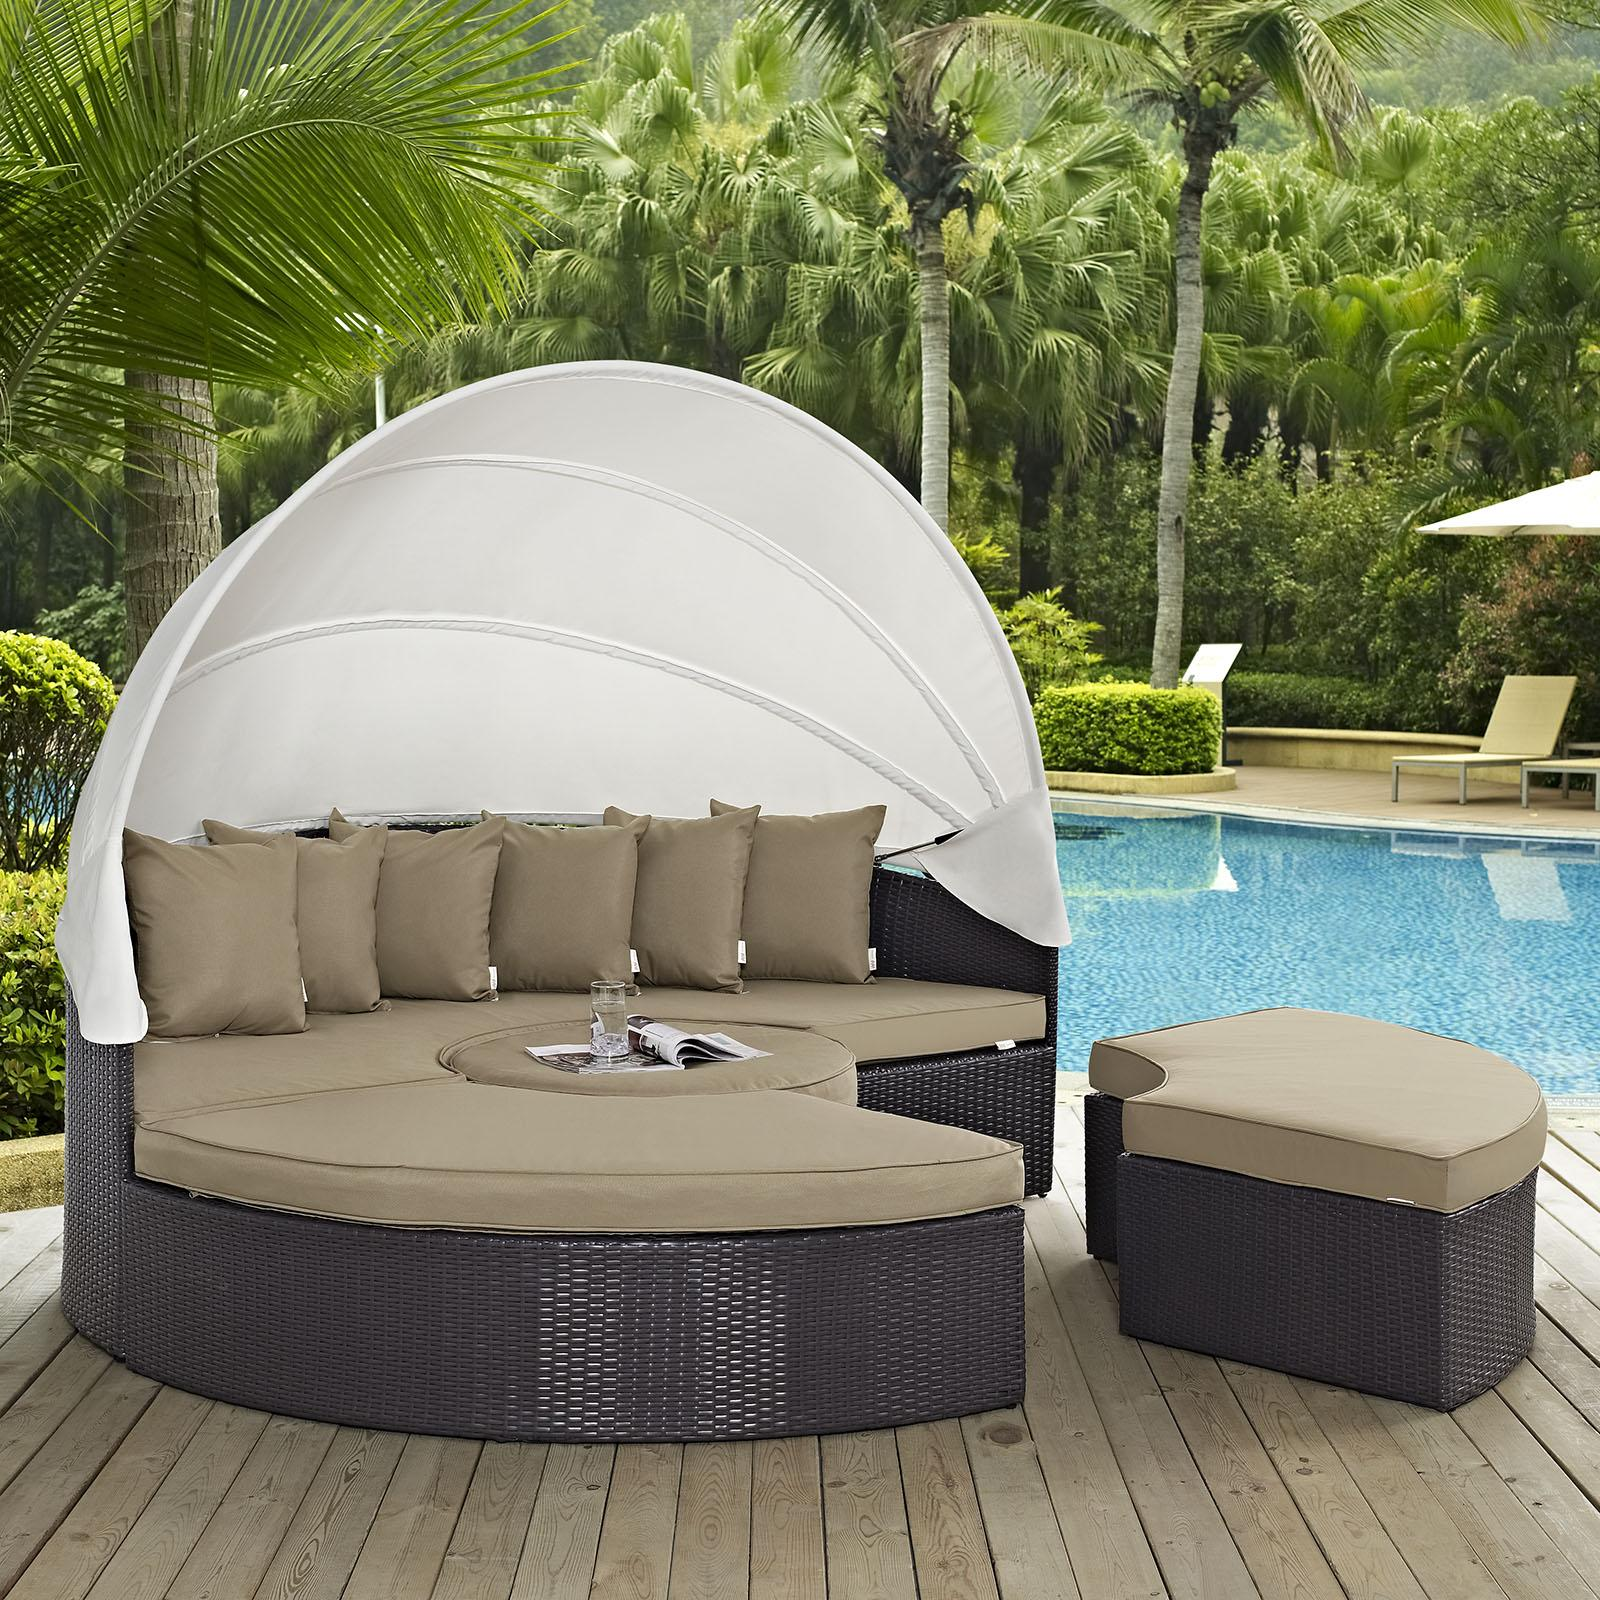 - Canopy Outdoor Daybed EEI-2173 - Patio Furniture Co